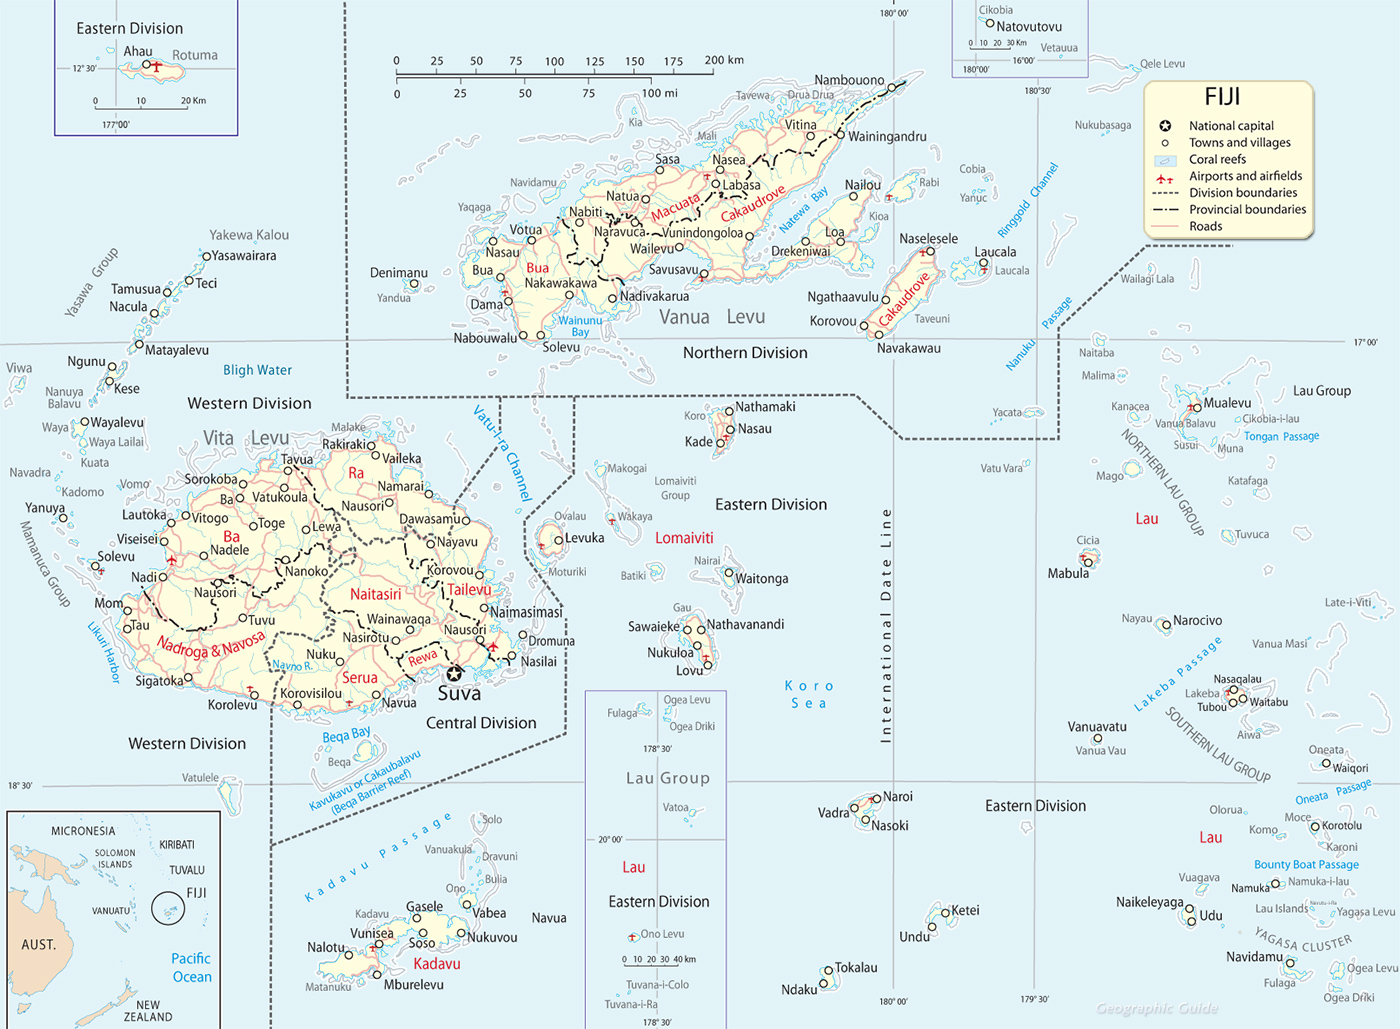 Fiji Island Map Map Fiji Islands, Suva Fiji Island Map